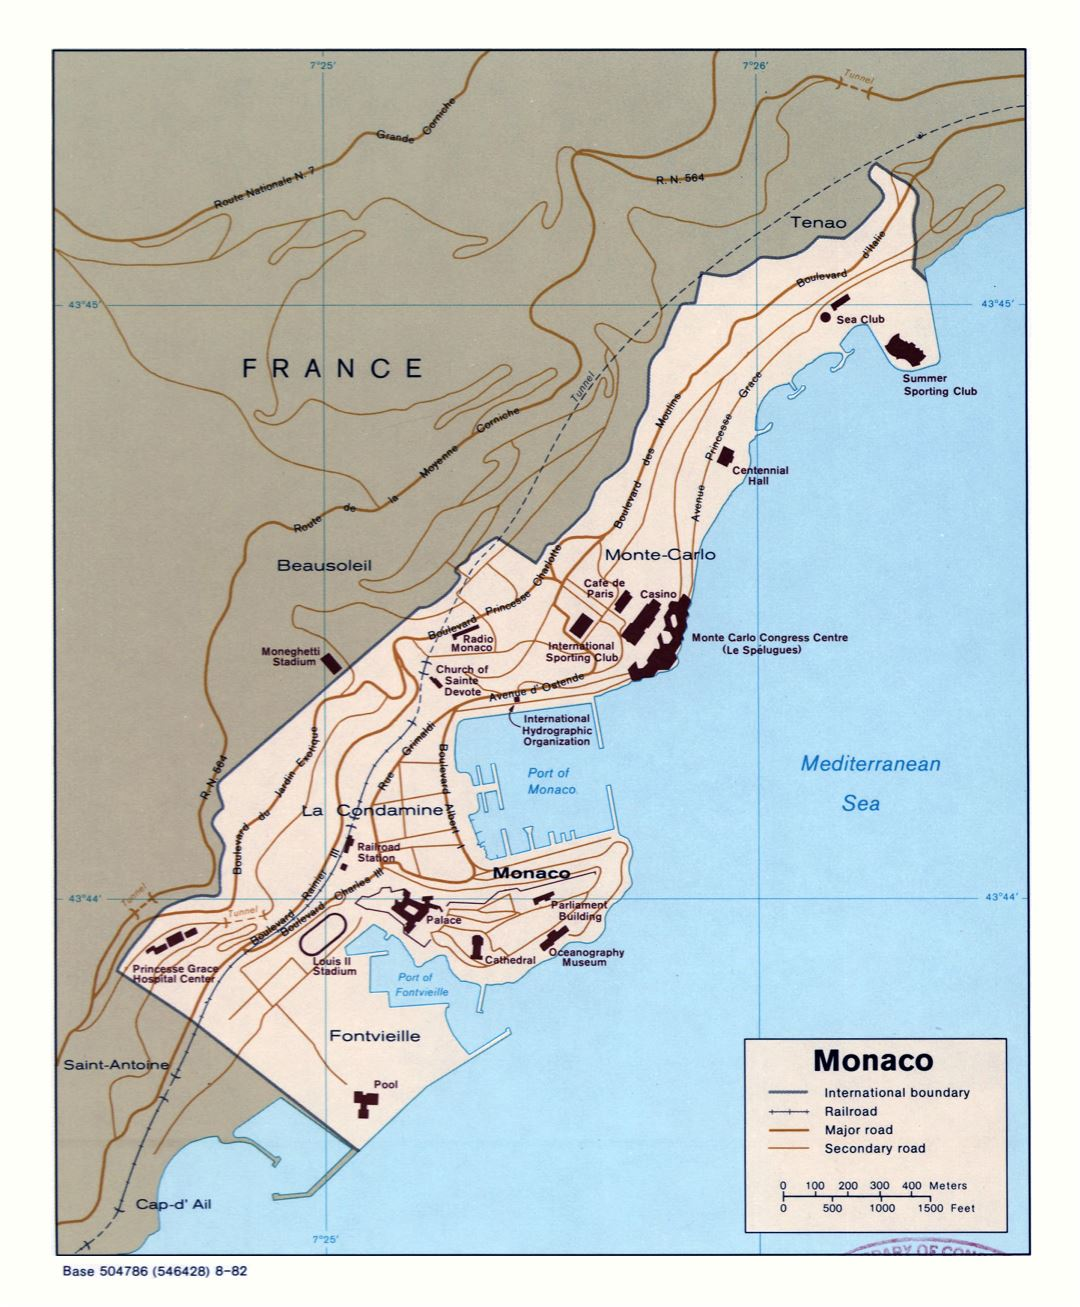 Large scale political map of Monaco with roads, railroads and buildings - 1982